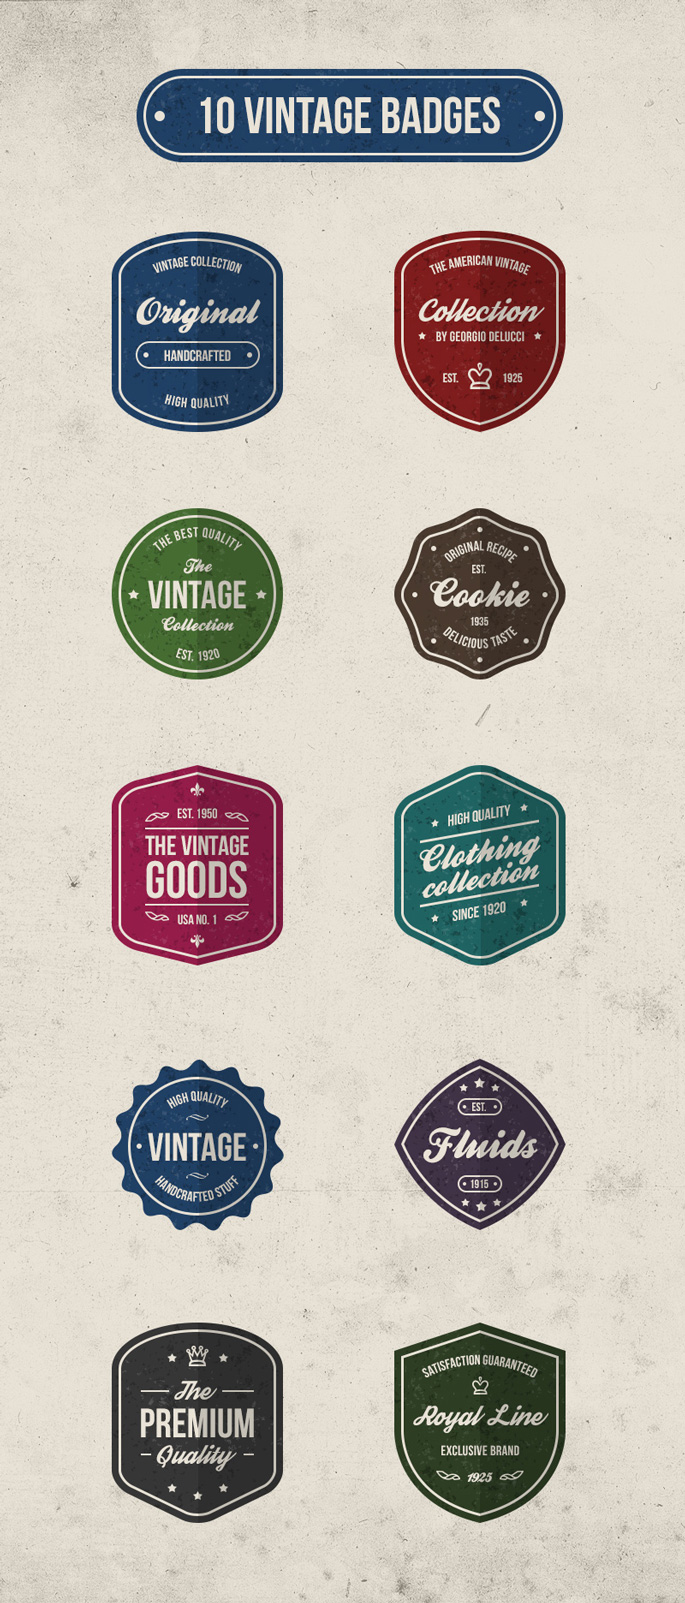 10-badges-retro